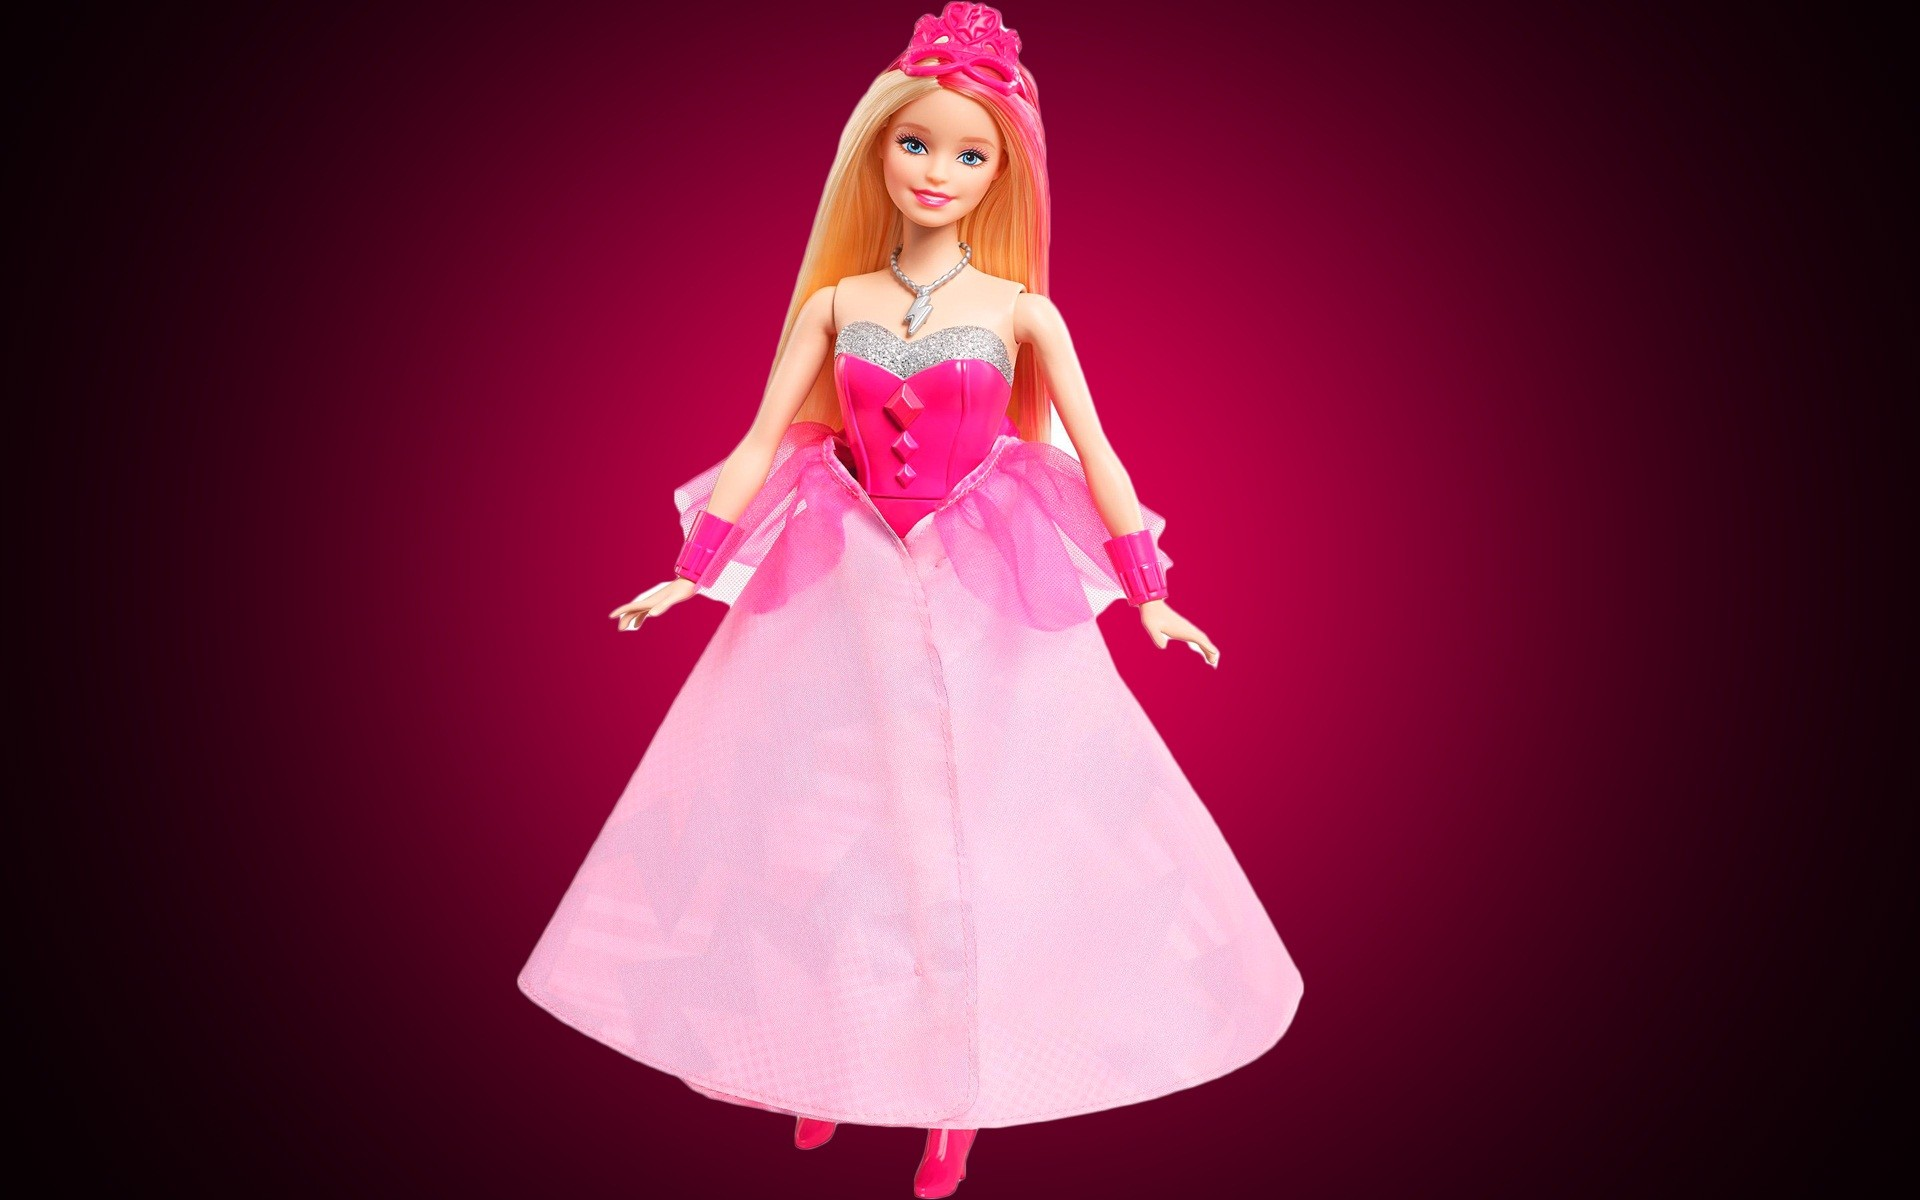 Latest wallpaper of barbie on 2018 wallpapertag - Barbie images for wallpaper ...